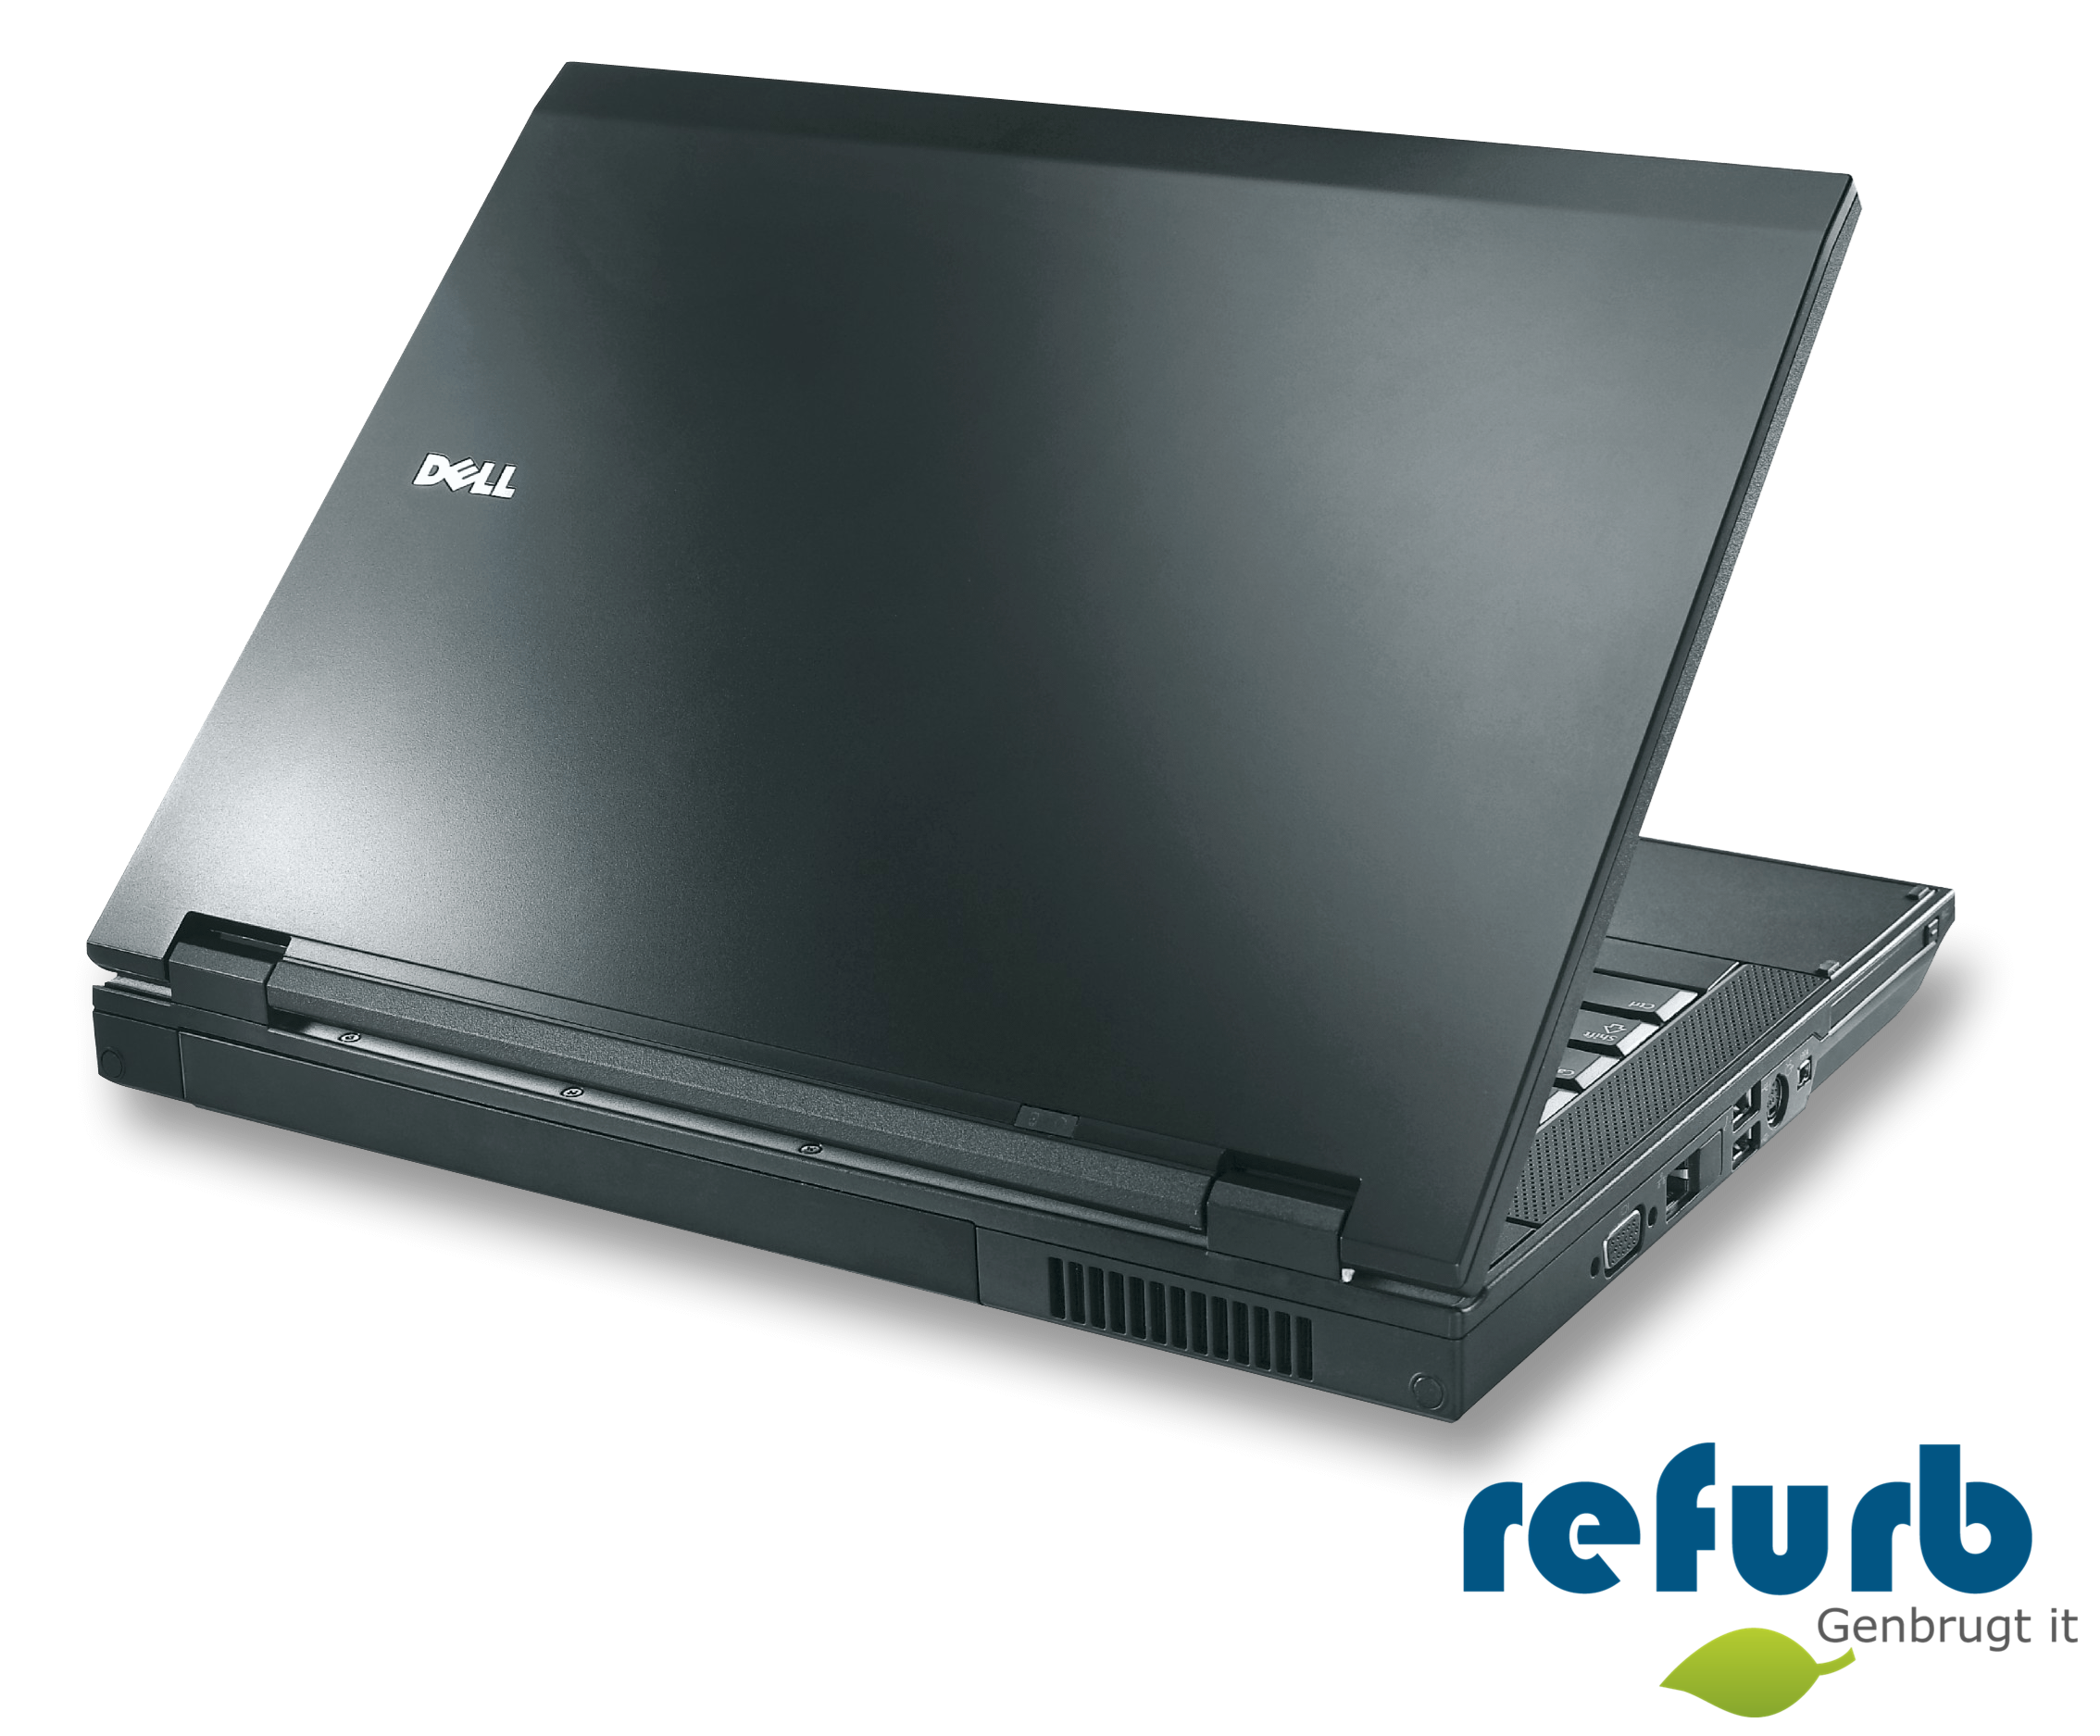 Dell – Dell latitude e5400 fra refurb